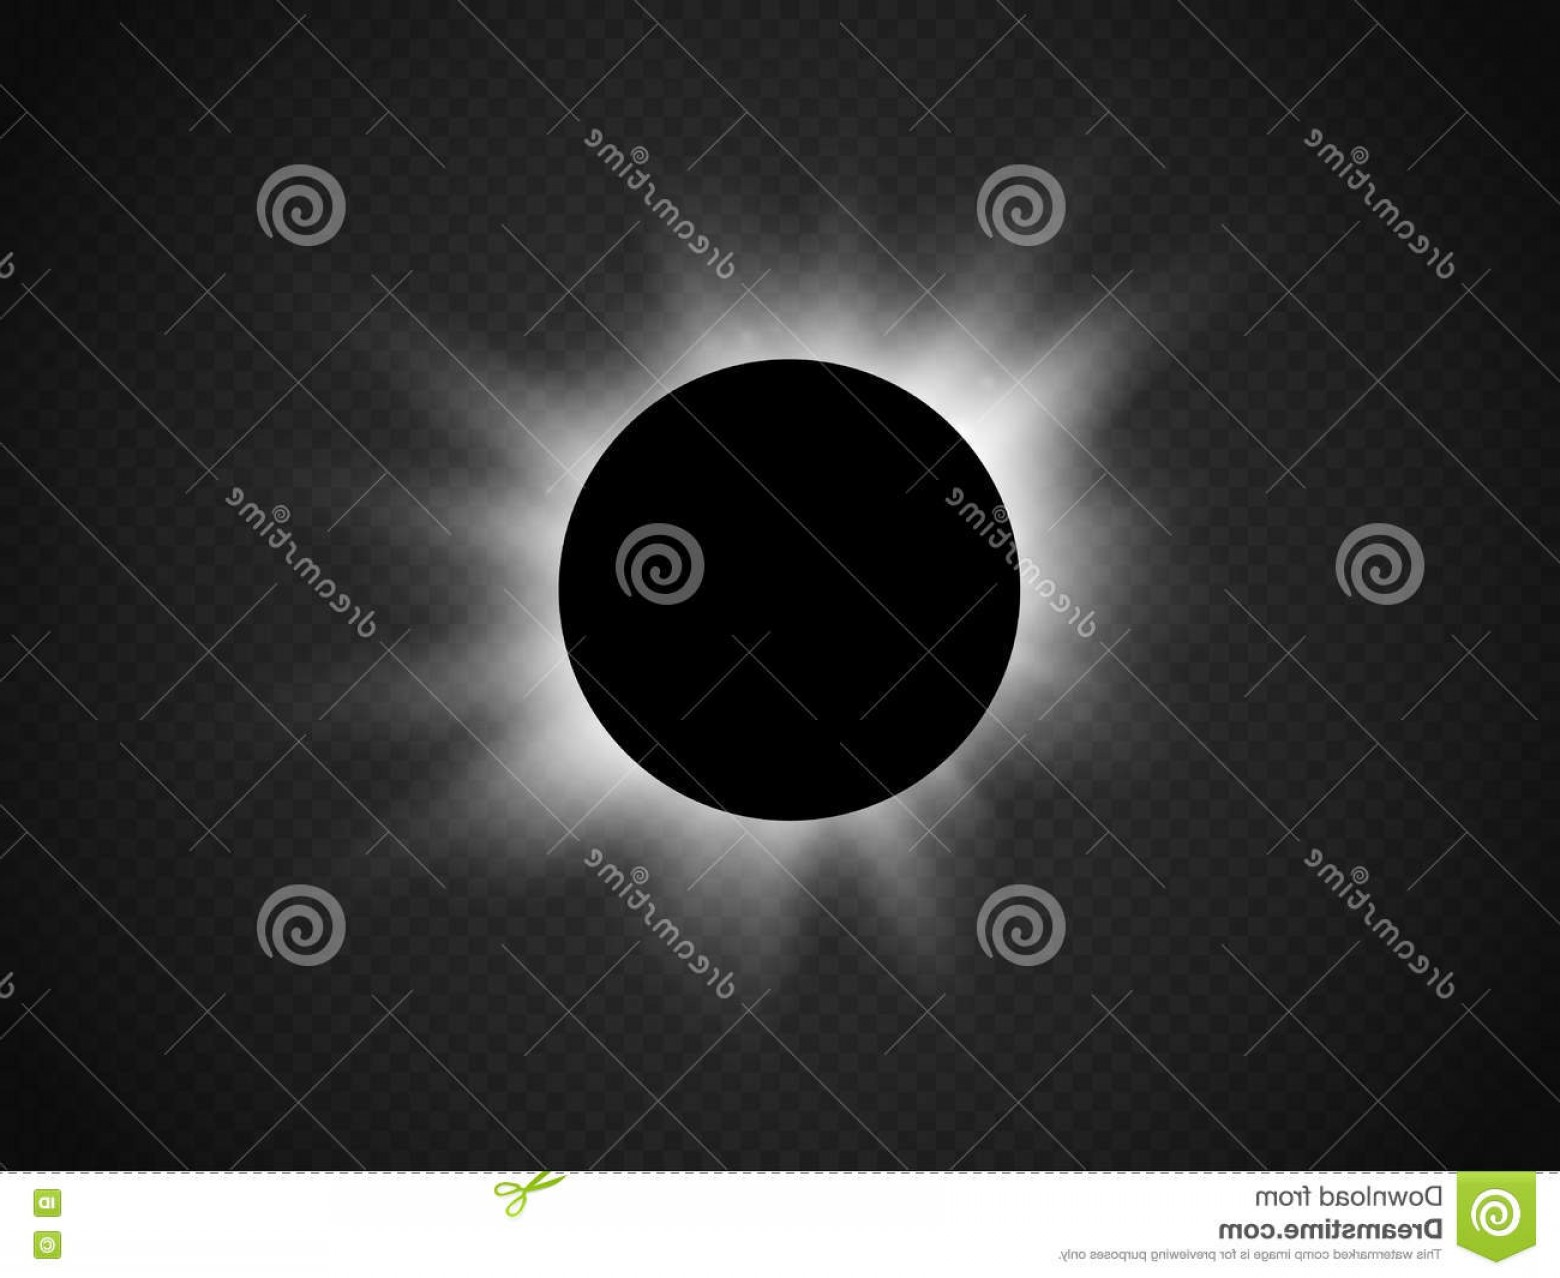 Whitew Eclipse Vector: Stock Illustration Sun Eclipse Isolated Transparent Background Vector Illustration Image